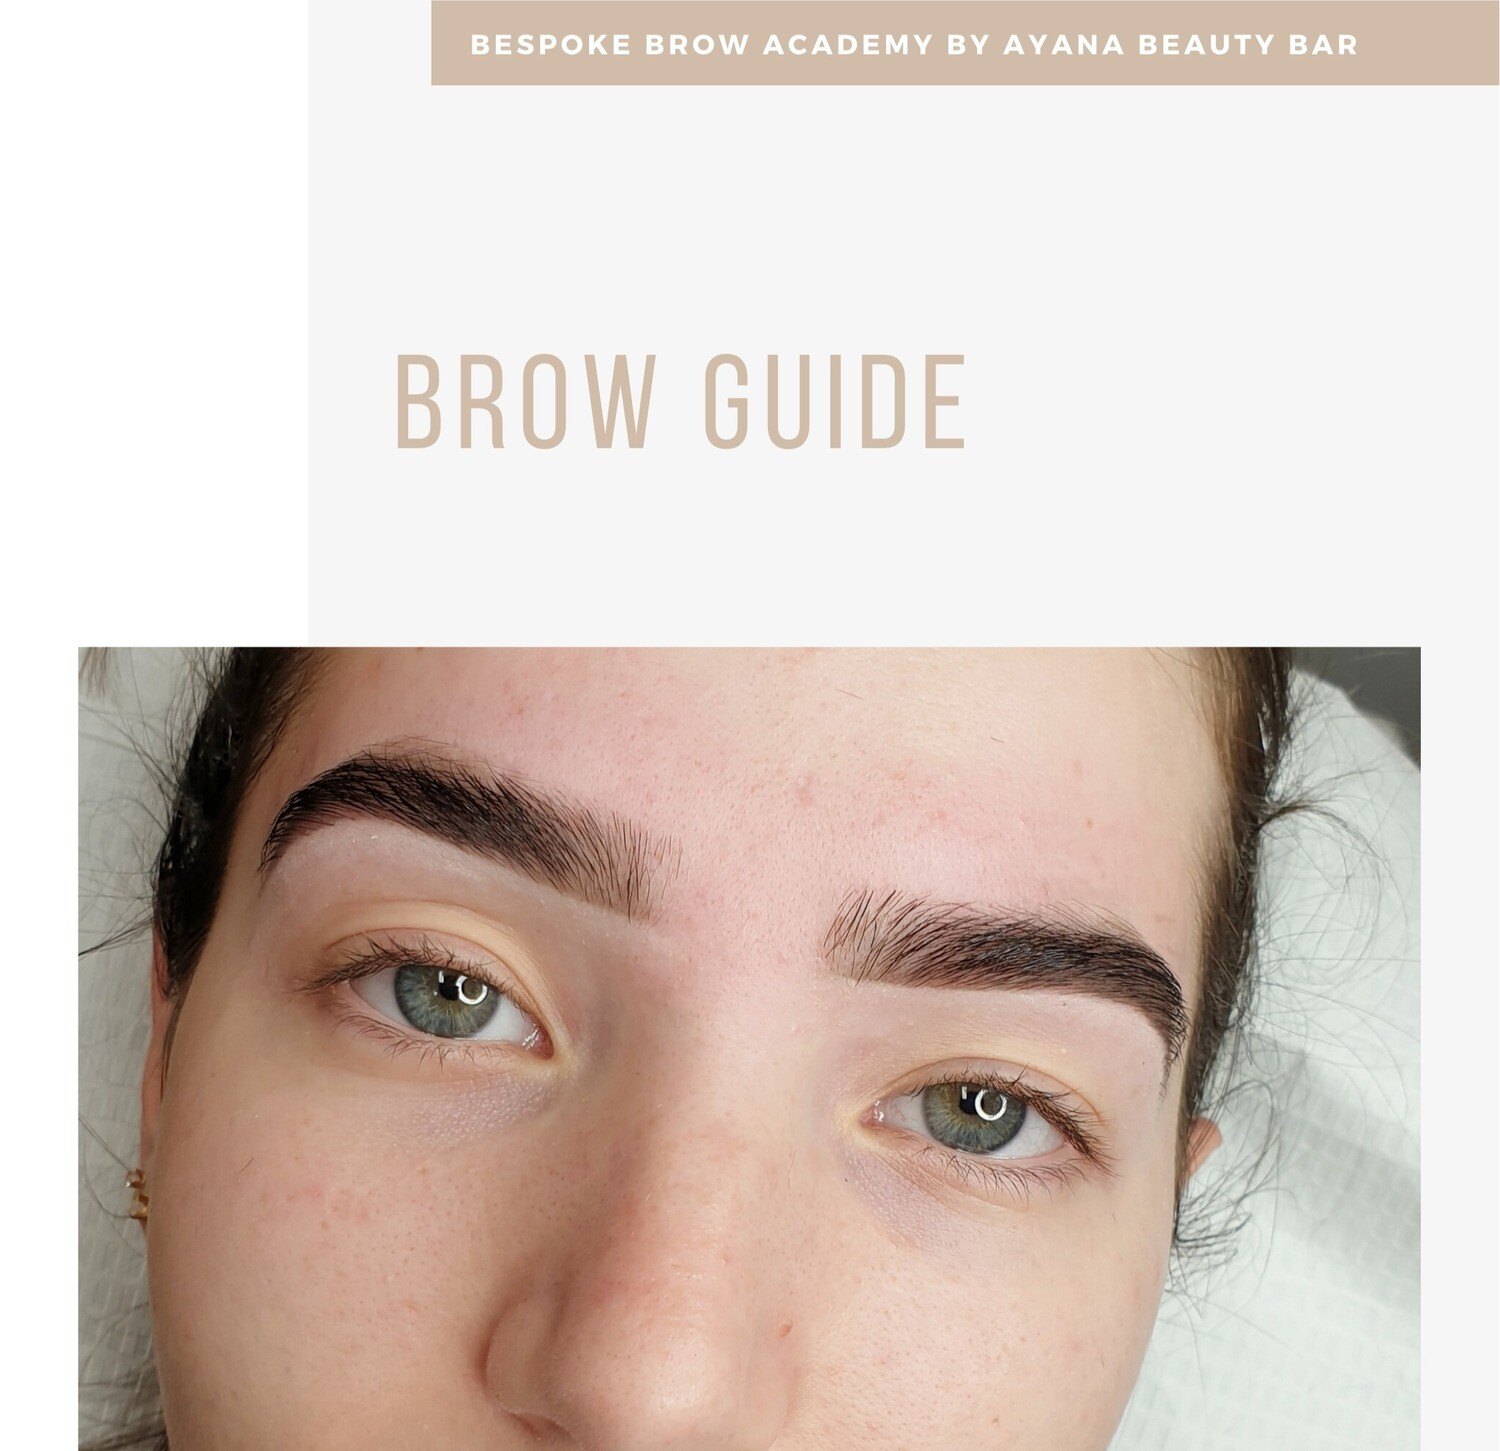 Brow Guide - Professional Use Only